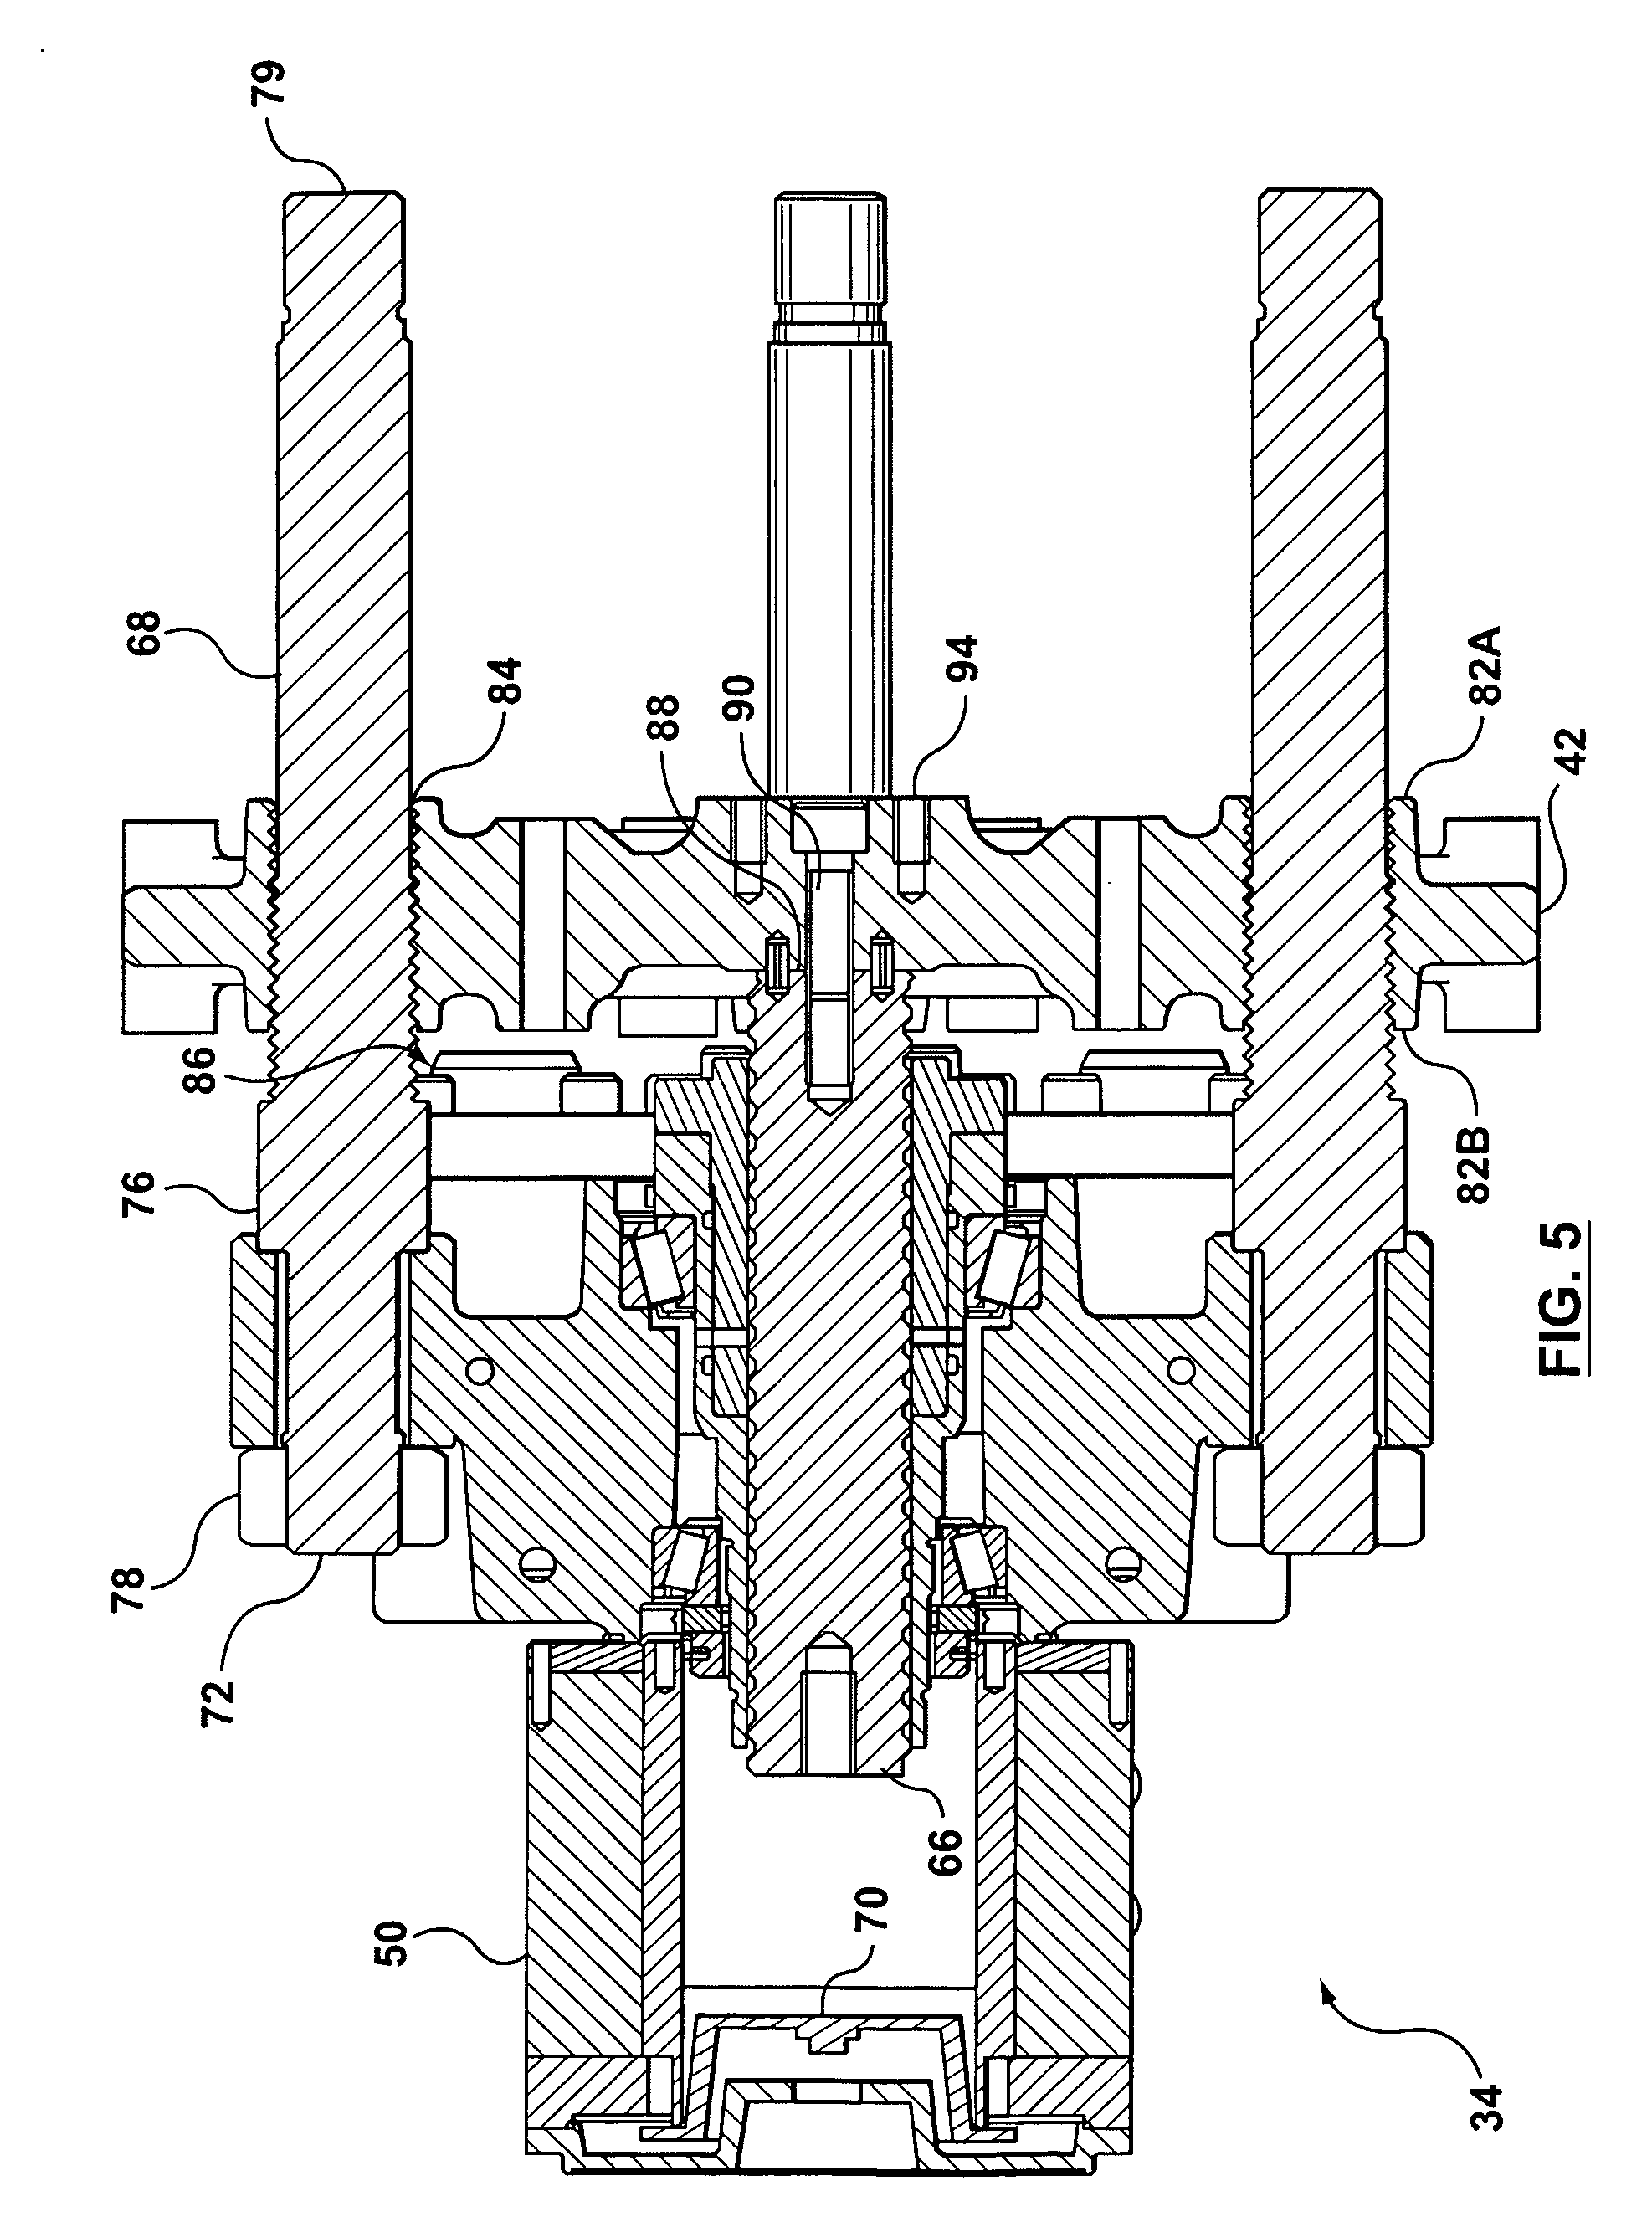 patent us20090104305 - ejector assembly for ejecting parts from a mold